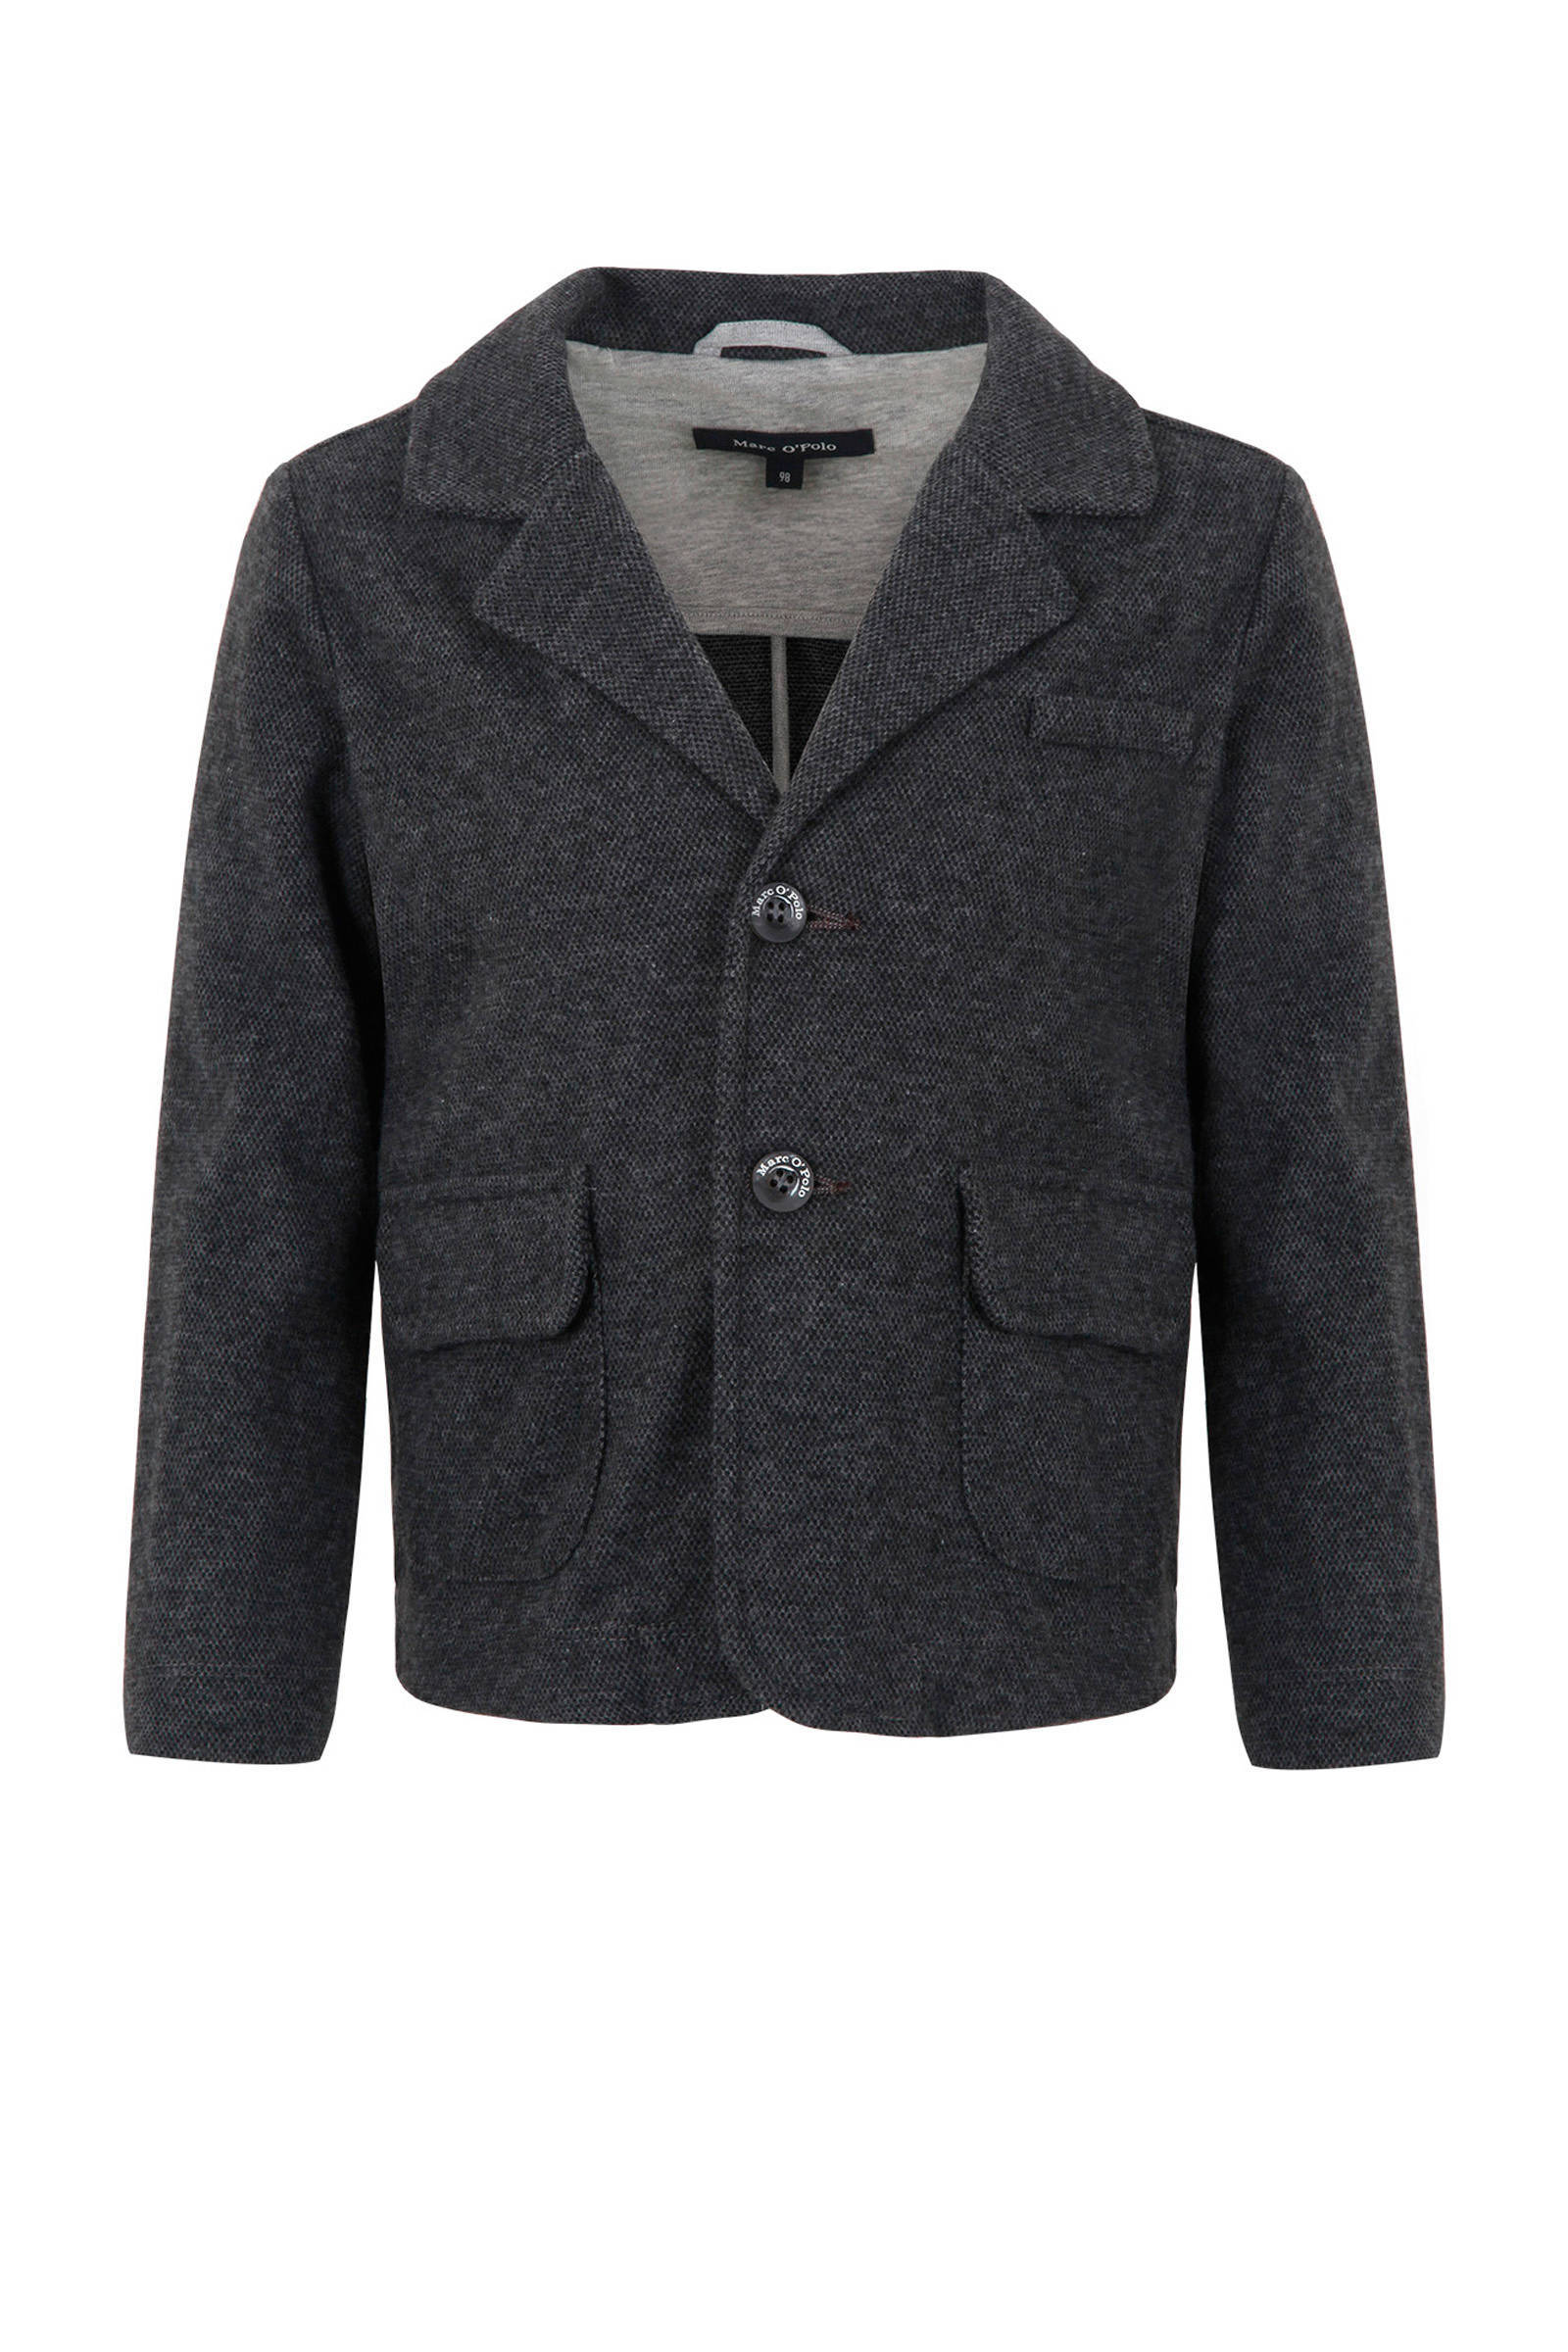 Marc O'Polo coat blauw (jongens)